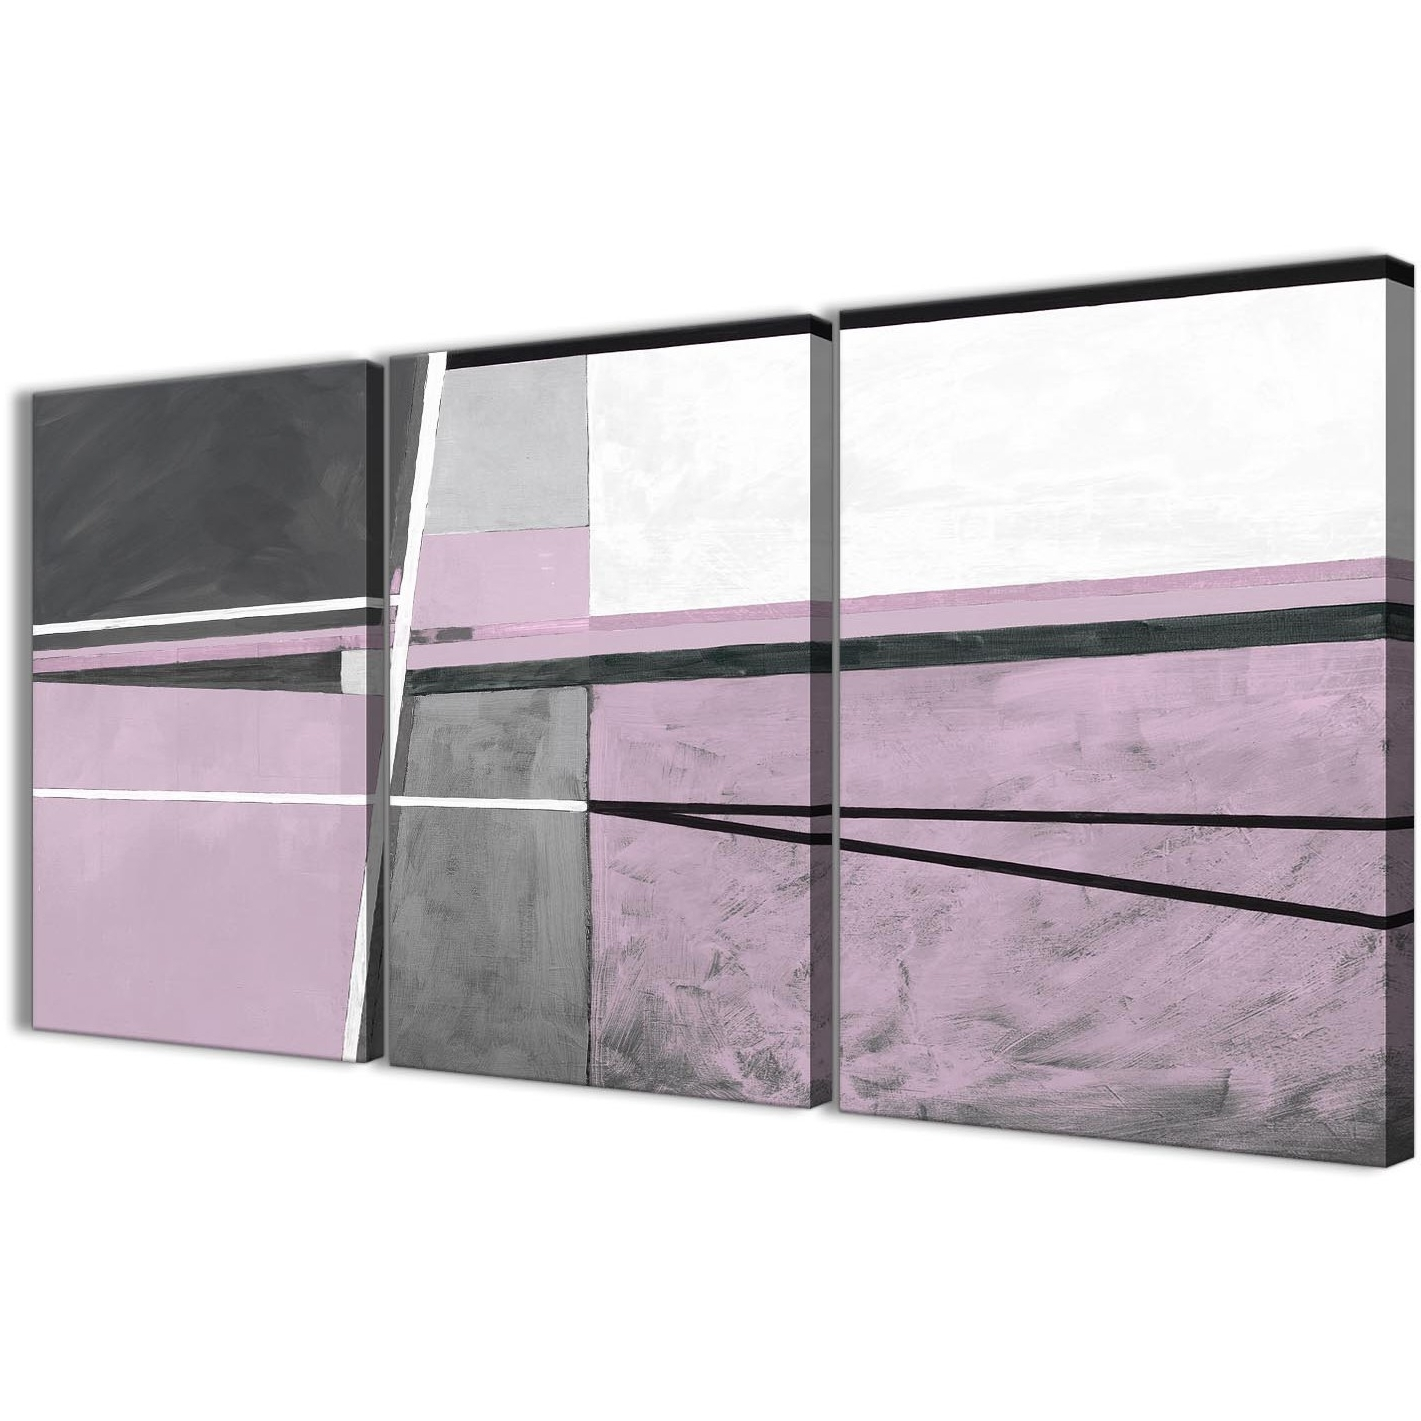 2018 Lilac Canvas Wall Art Inside 3 Panel Lilac Grey Painting Kitchen Canvas Wall Art Accessories (View 1 of 15)